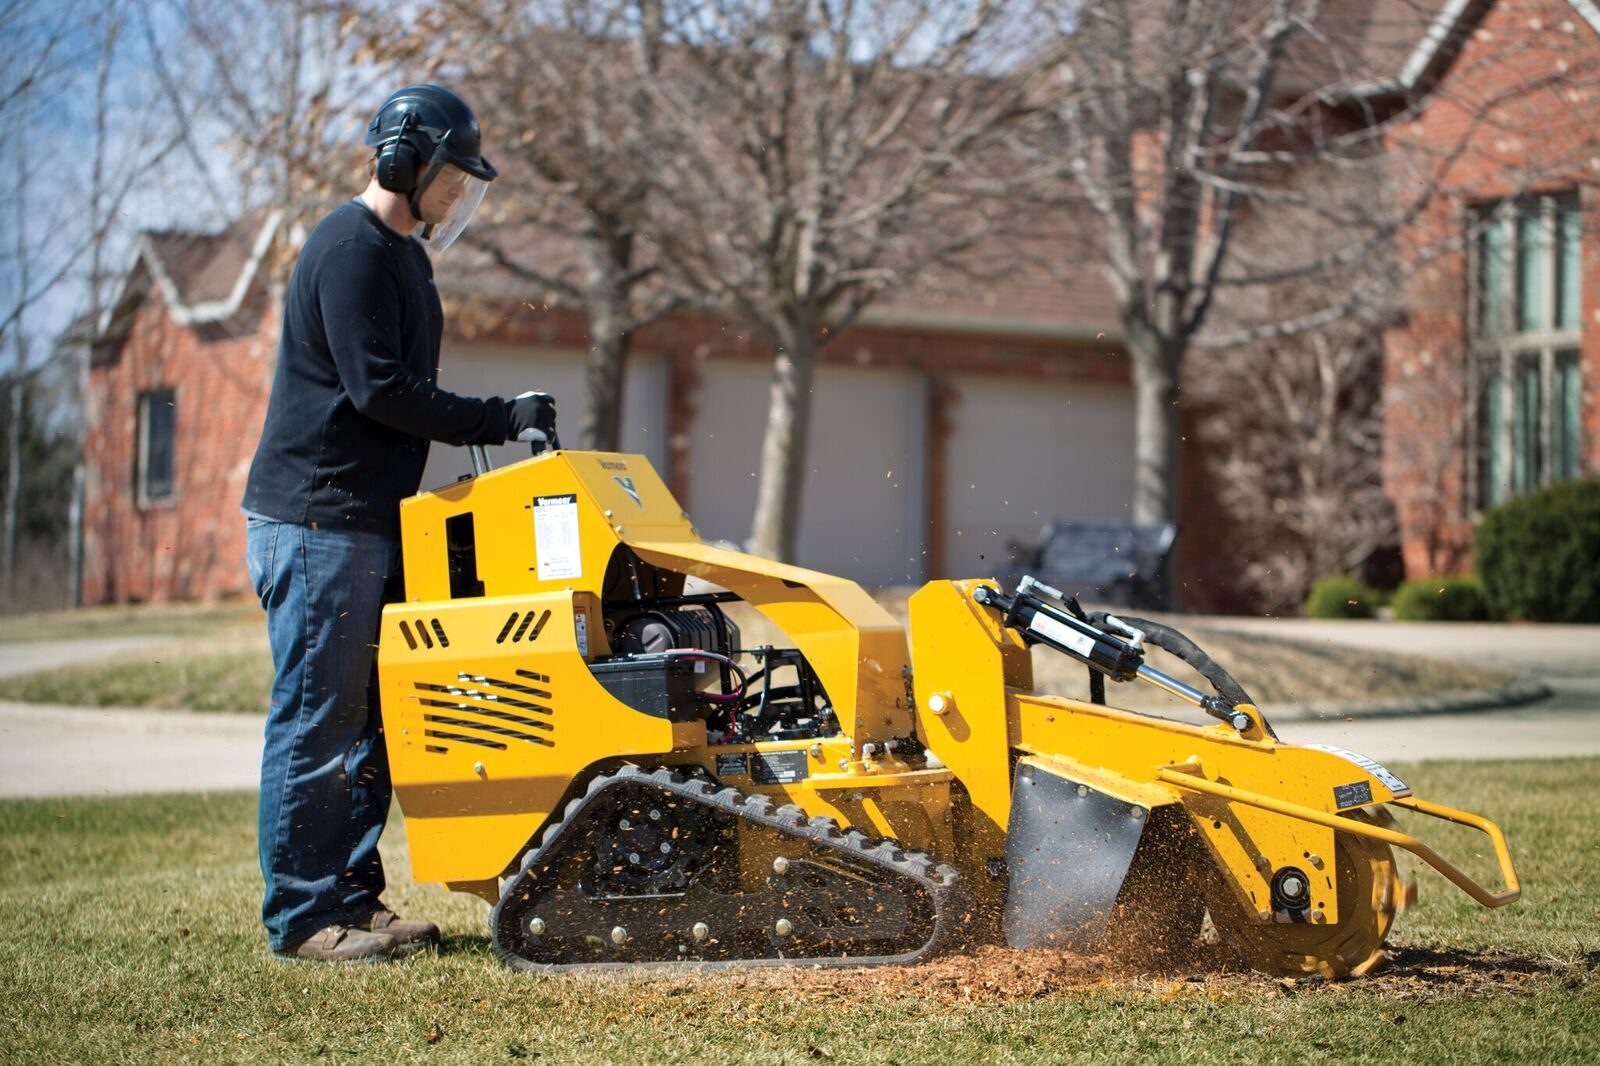 Lowndesboro-Montgomery Tree Trimming and Stump Grinding Services-We Offer Tree Trimming Services, Tree Removal, Tree Pruning, Tree Cutting, Residential and Commercial Tree Trimming Services, Storm Damage, Emergency Tree Removal, Land Clearing, Tree Companies, Tree Care Service, Stump Grinding, and we're the Best Tree Trimming Company Near You Guaranteed!